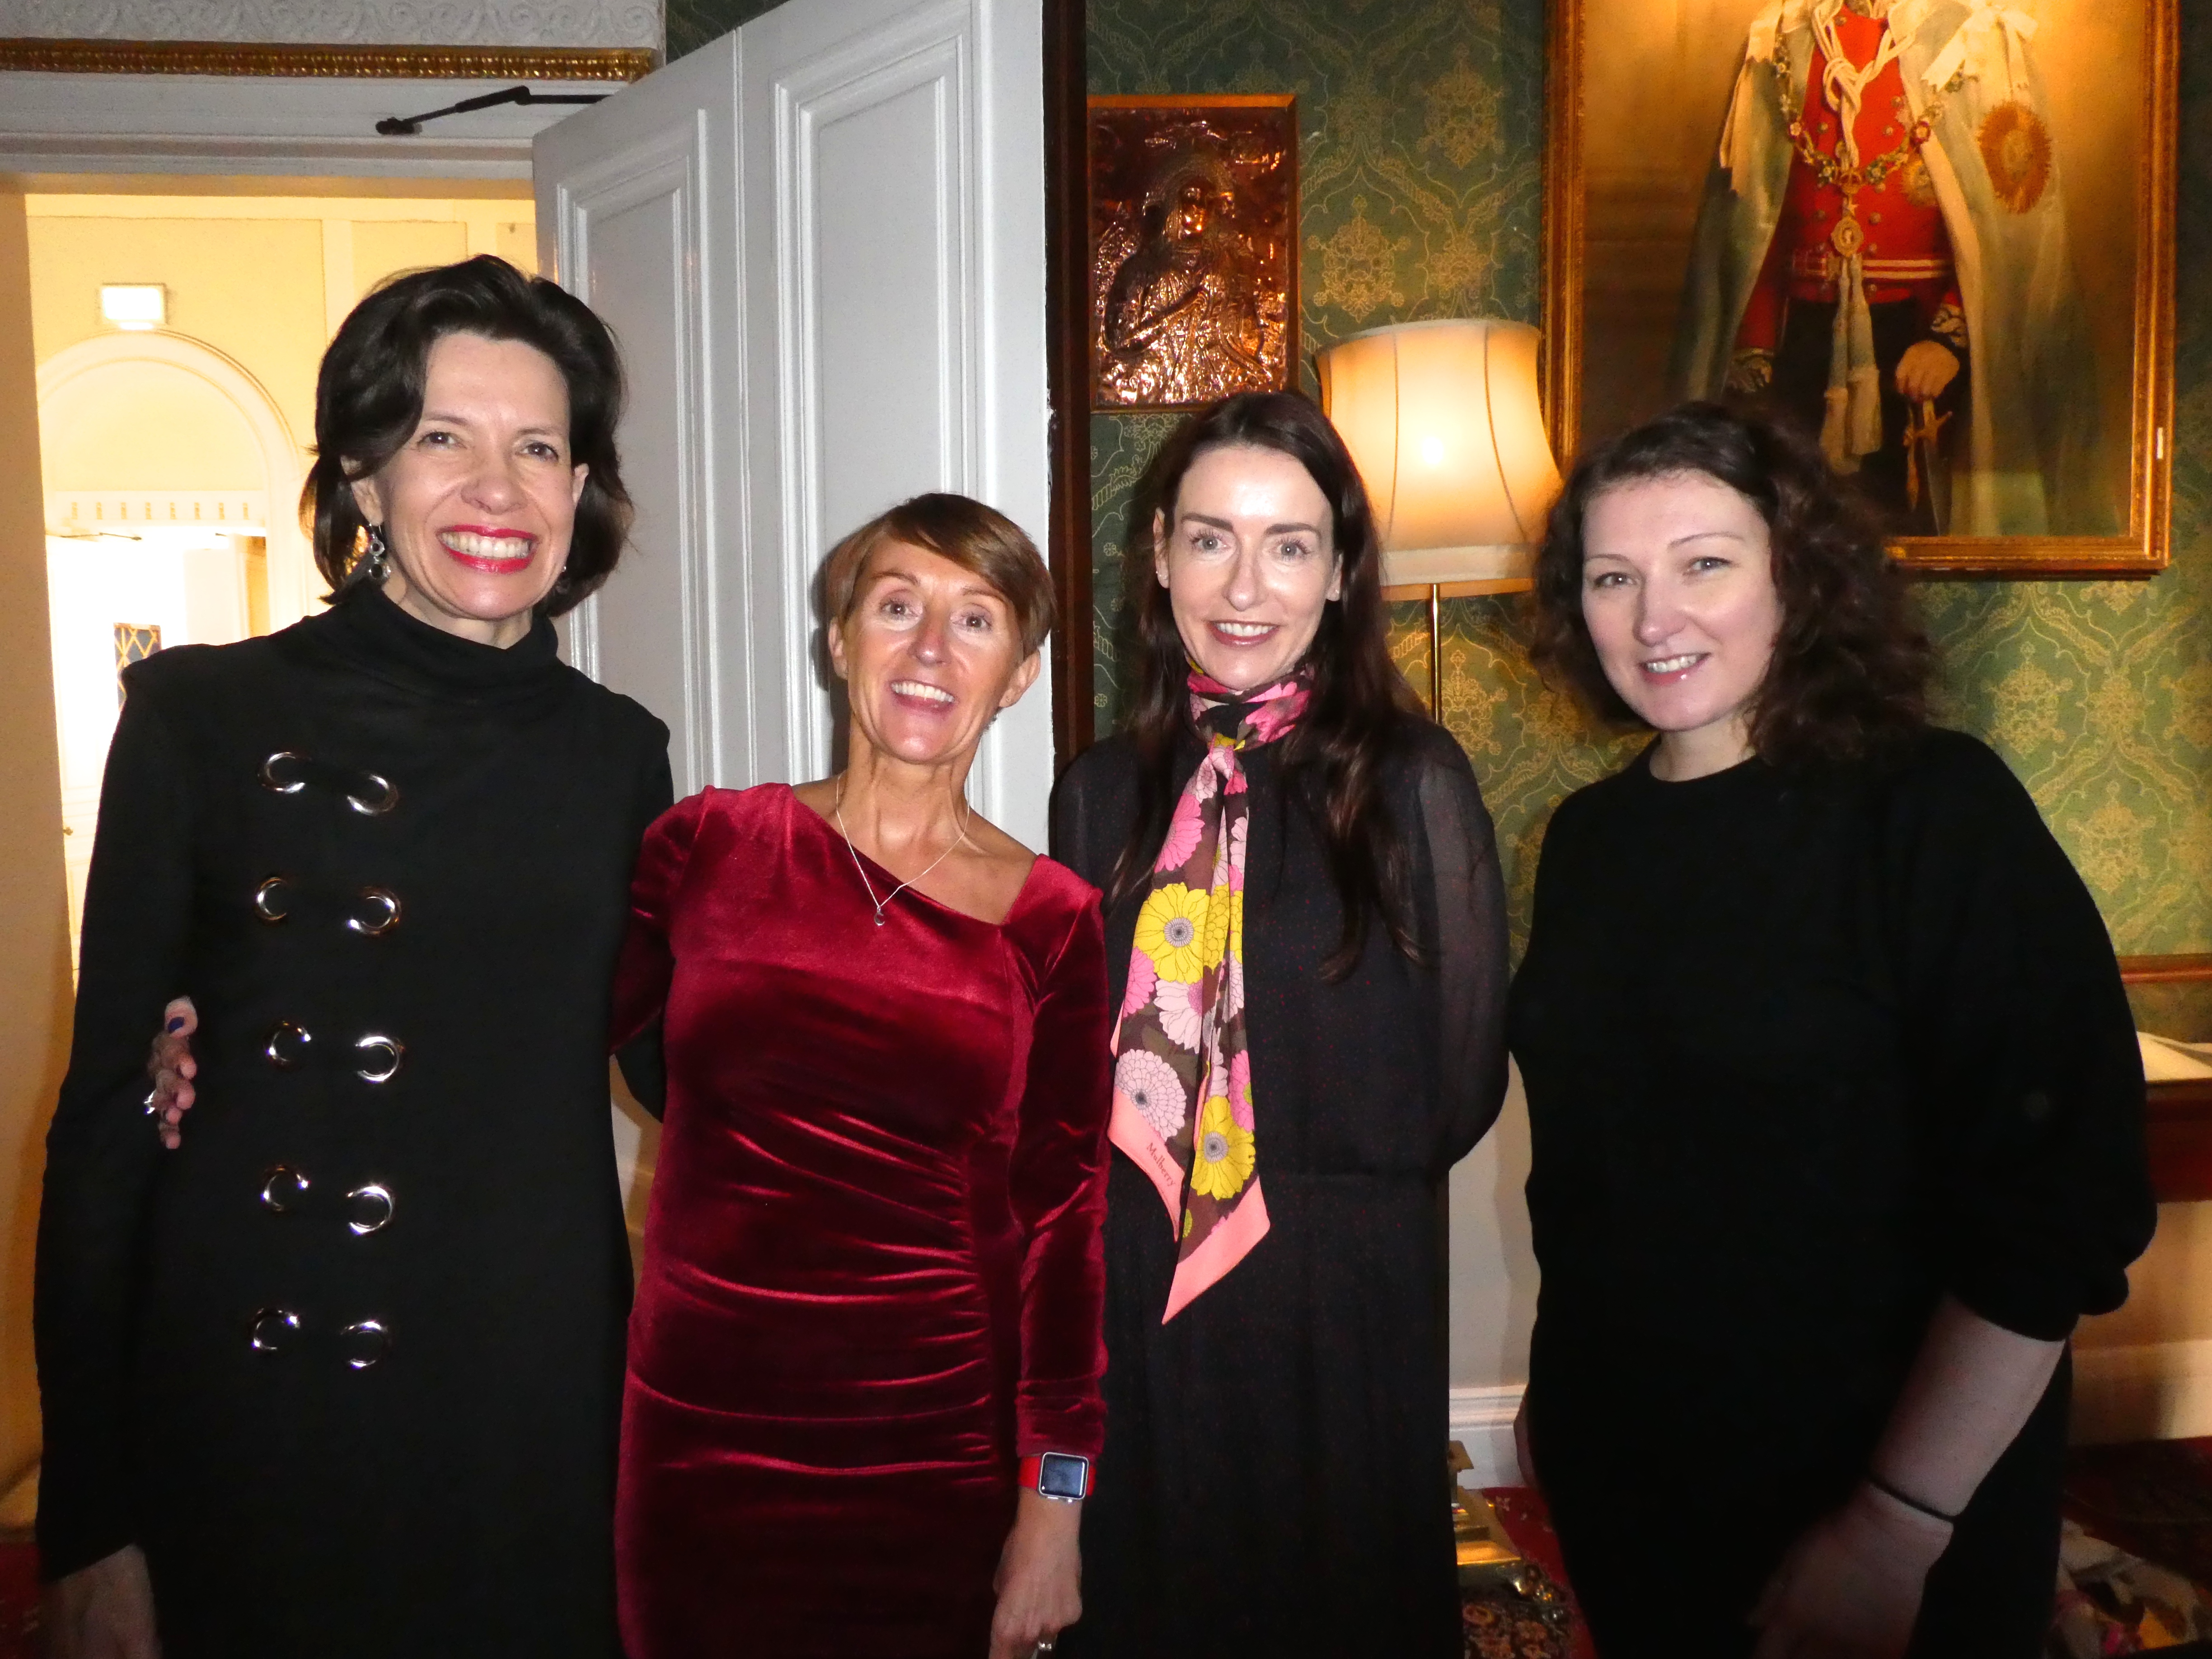 Above: GCA president Ceri Stirland (second left) with incoming president Belly Button's Rachel Hare (second right), GCA ceo Amanda Fergusson (far left) and council member Sarah-Jane Porter of Moonpig.